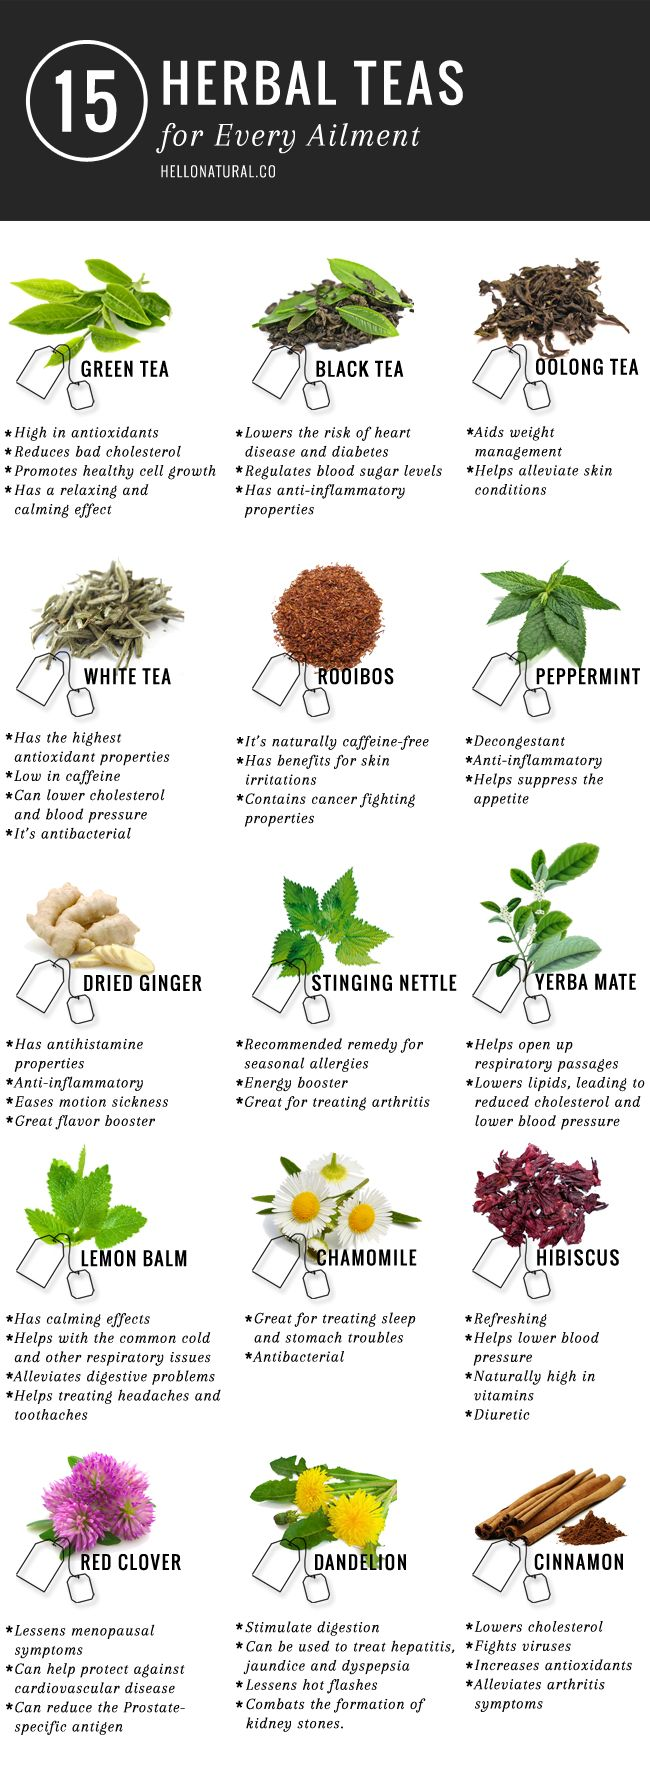 Benefits of herbal teas